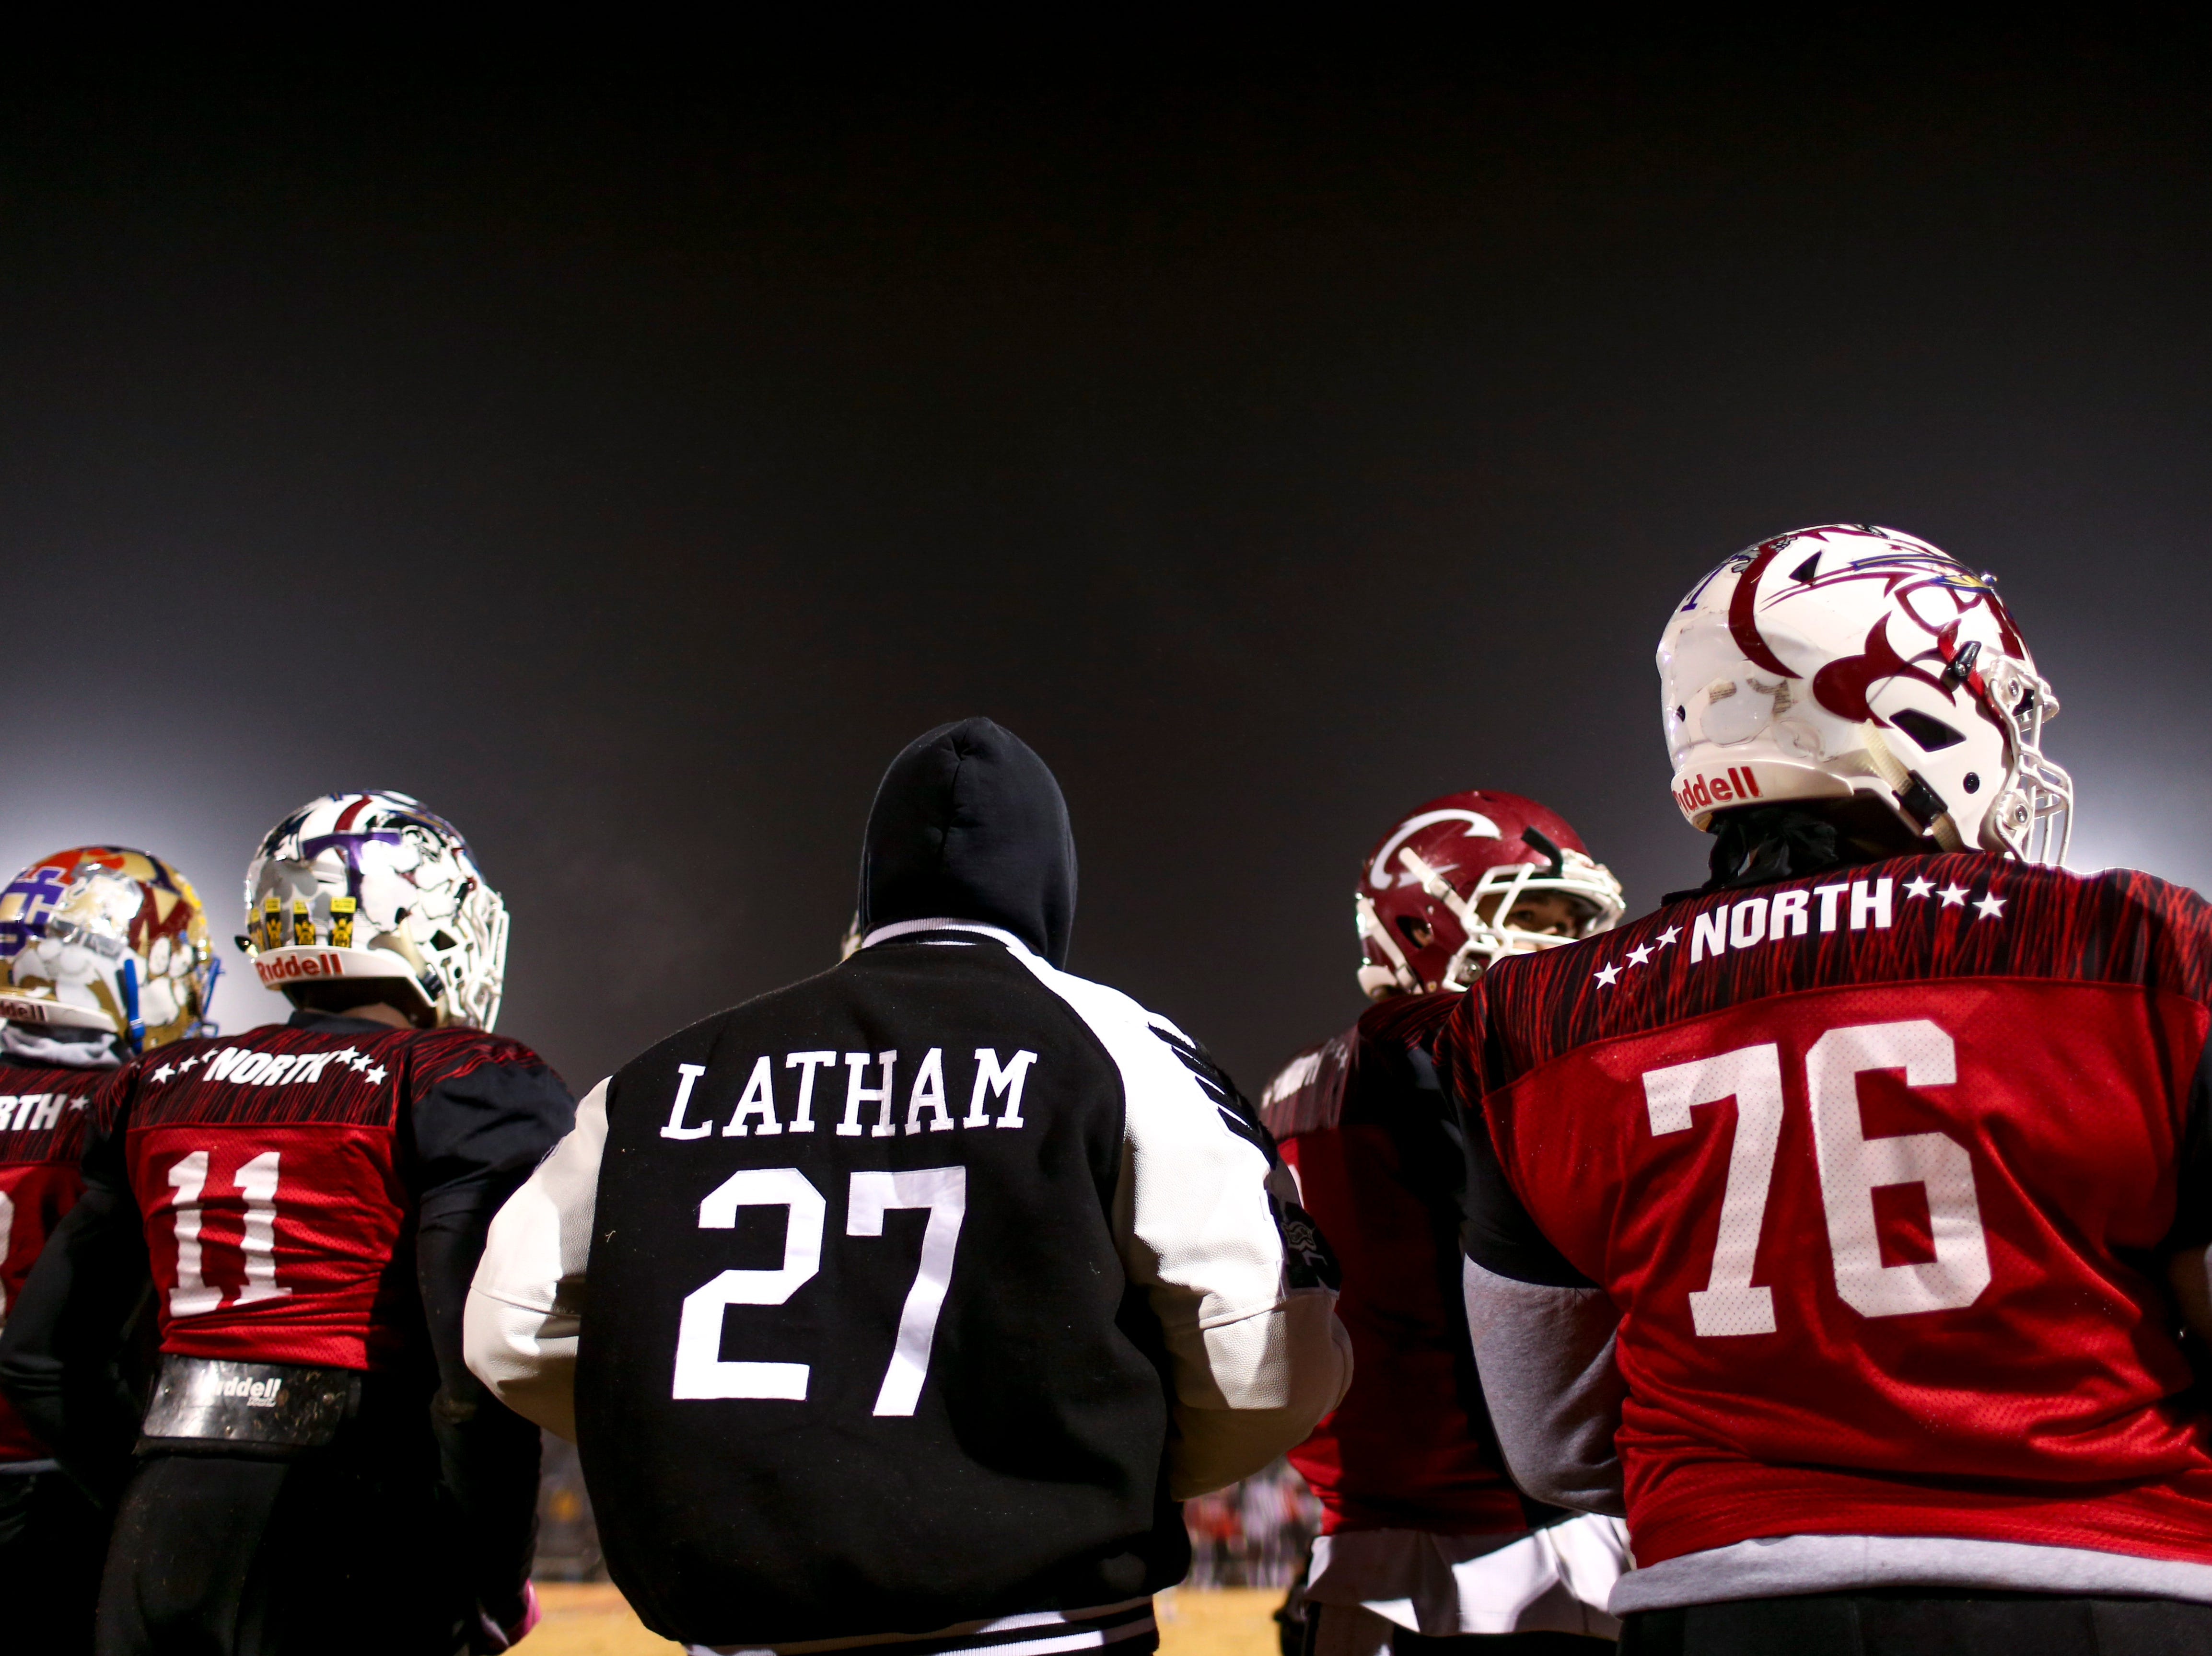 South Side's Eric Latham (27) hangs out on the sidelines, still recovering from a broken collar bone, watching his teammates play their last game during the West Tennessee All-Star football game at University School of Jackson in Jackson, Tenn., on Friday, Dec. 7, 2018.